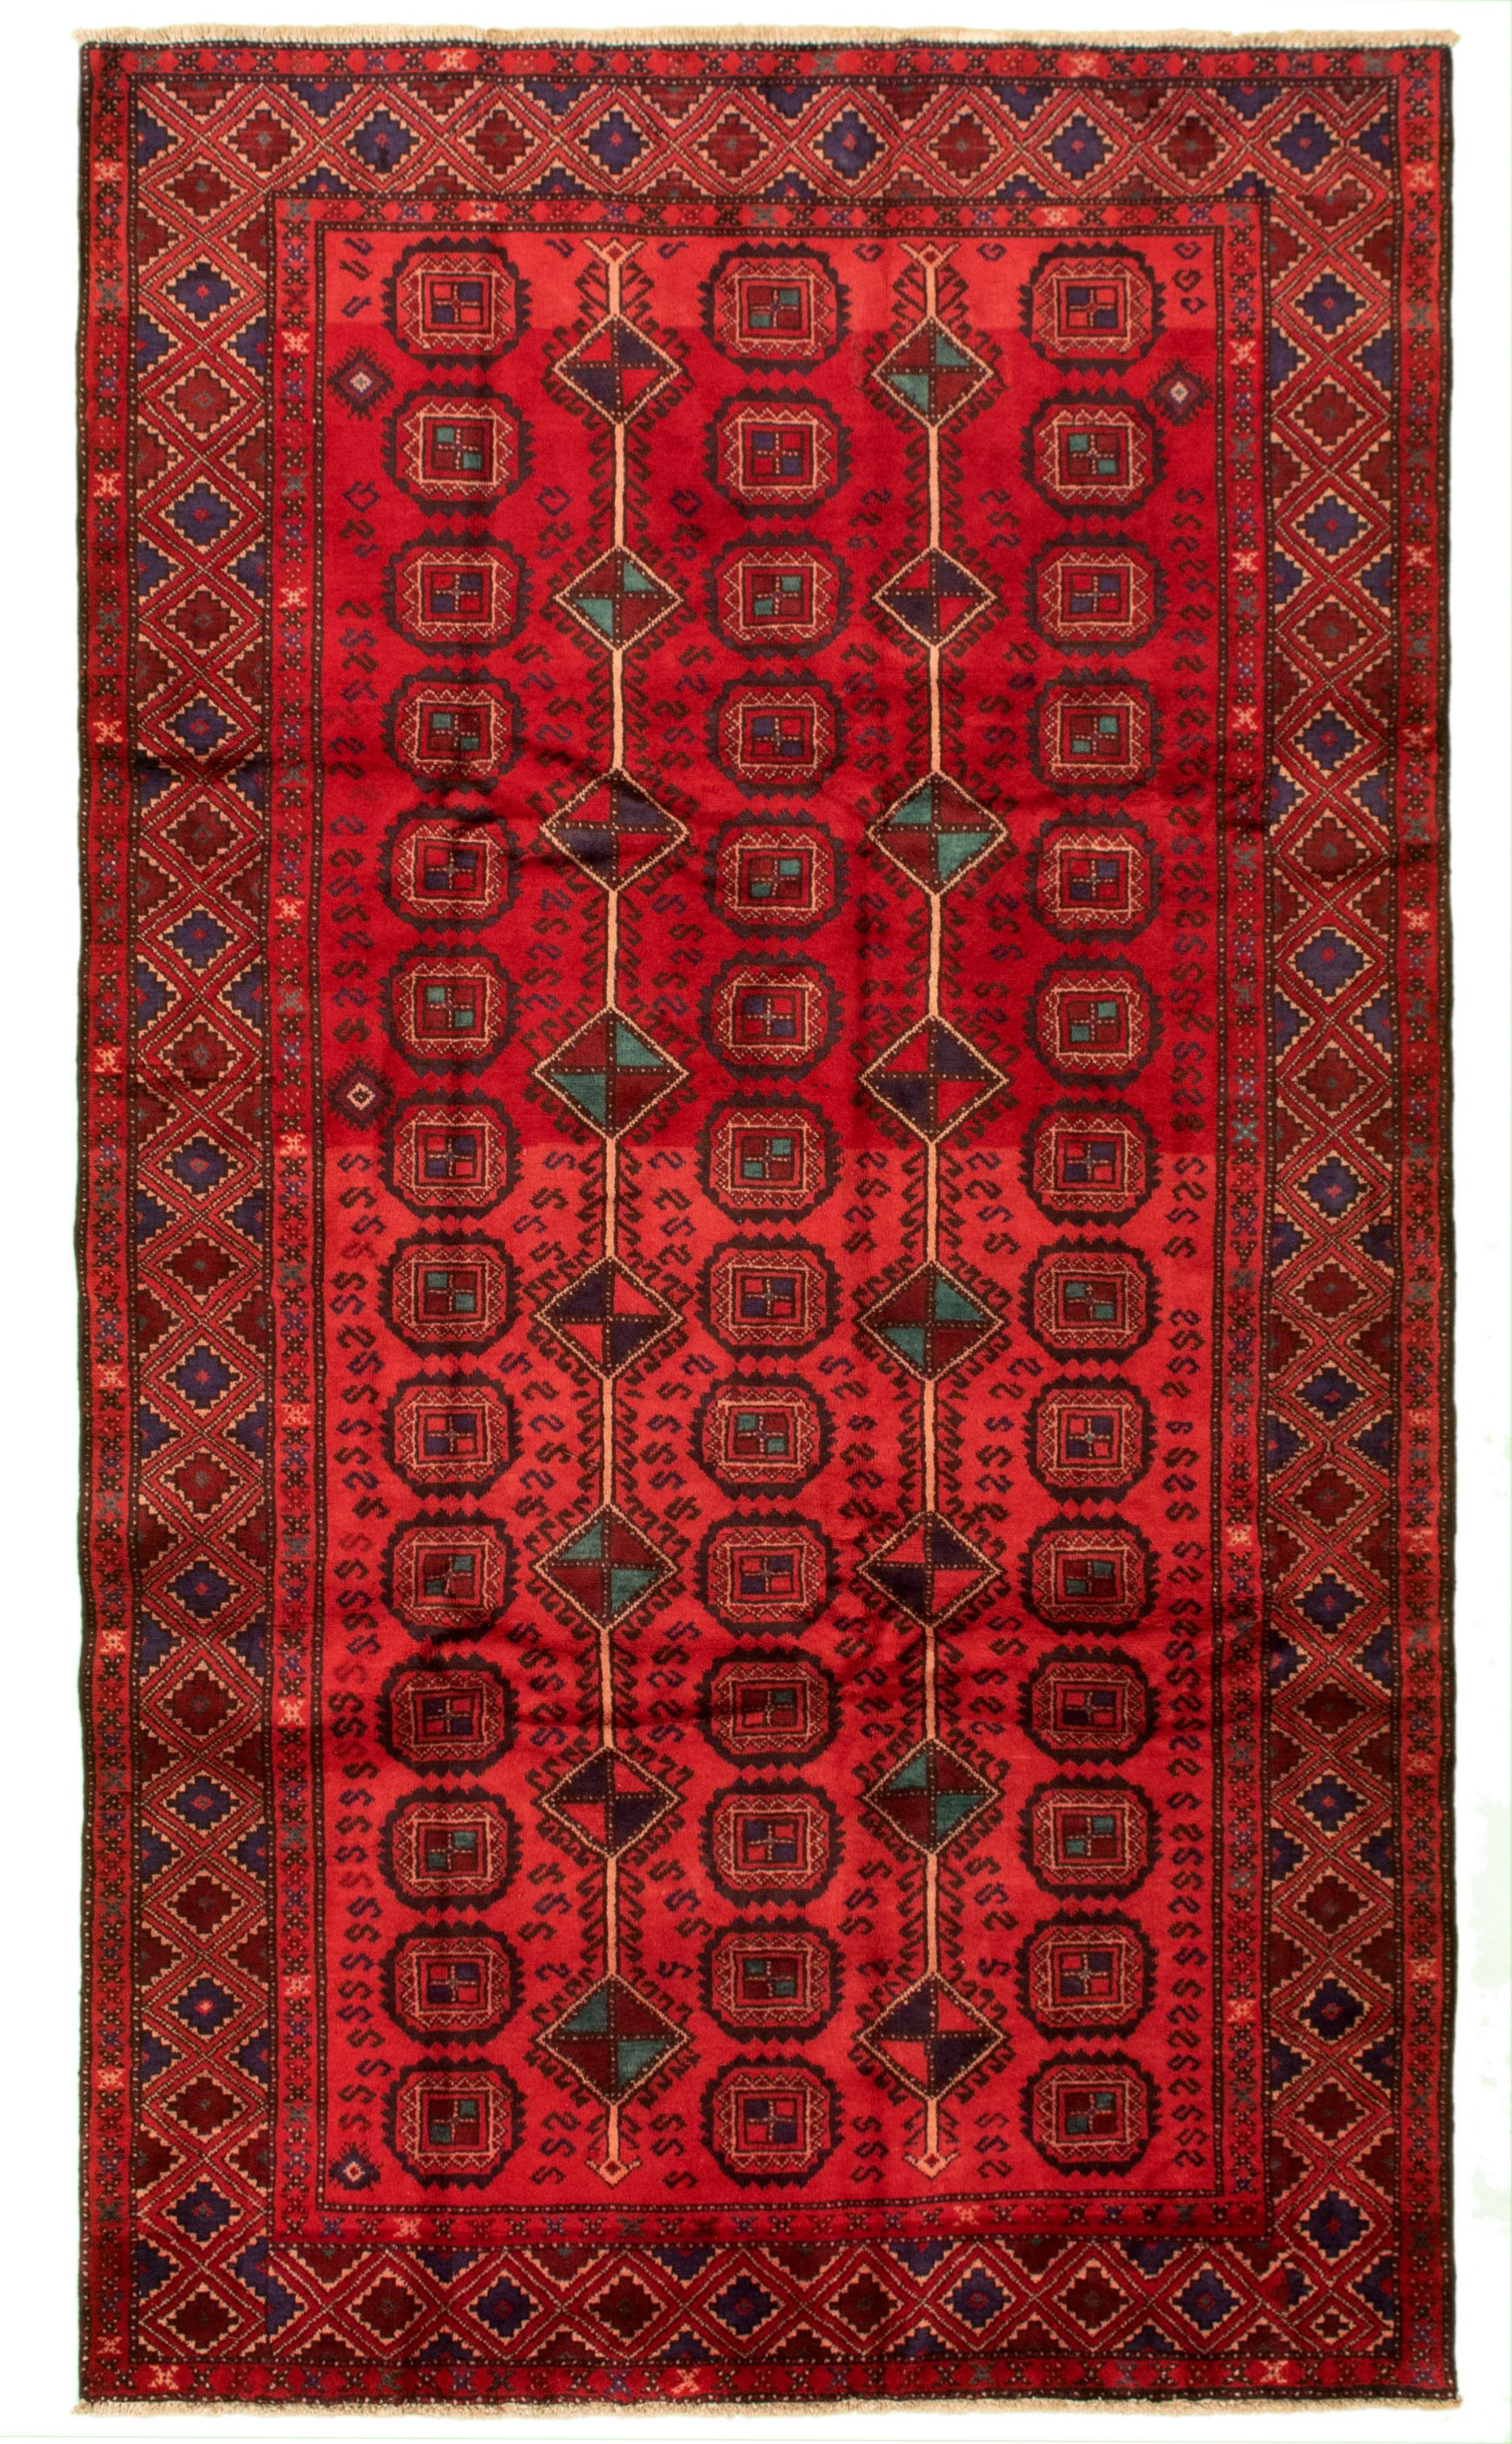 """Hand-knotted Authentic Turkish Red Wool Rug 5'6"""" x 9'9"""" Size: 5'6"""" x 9'9"""""""